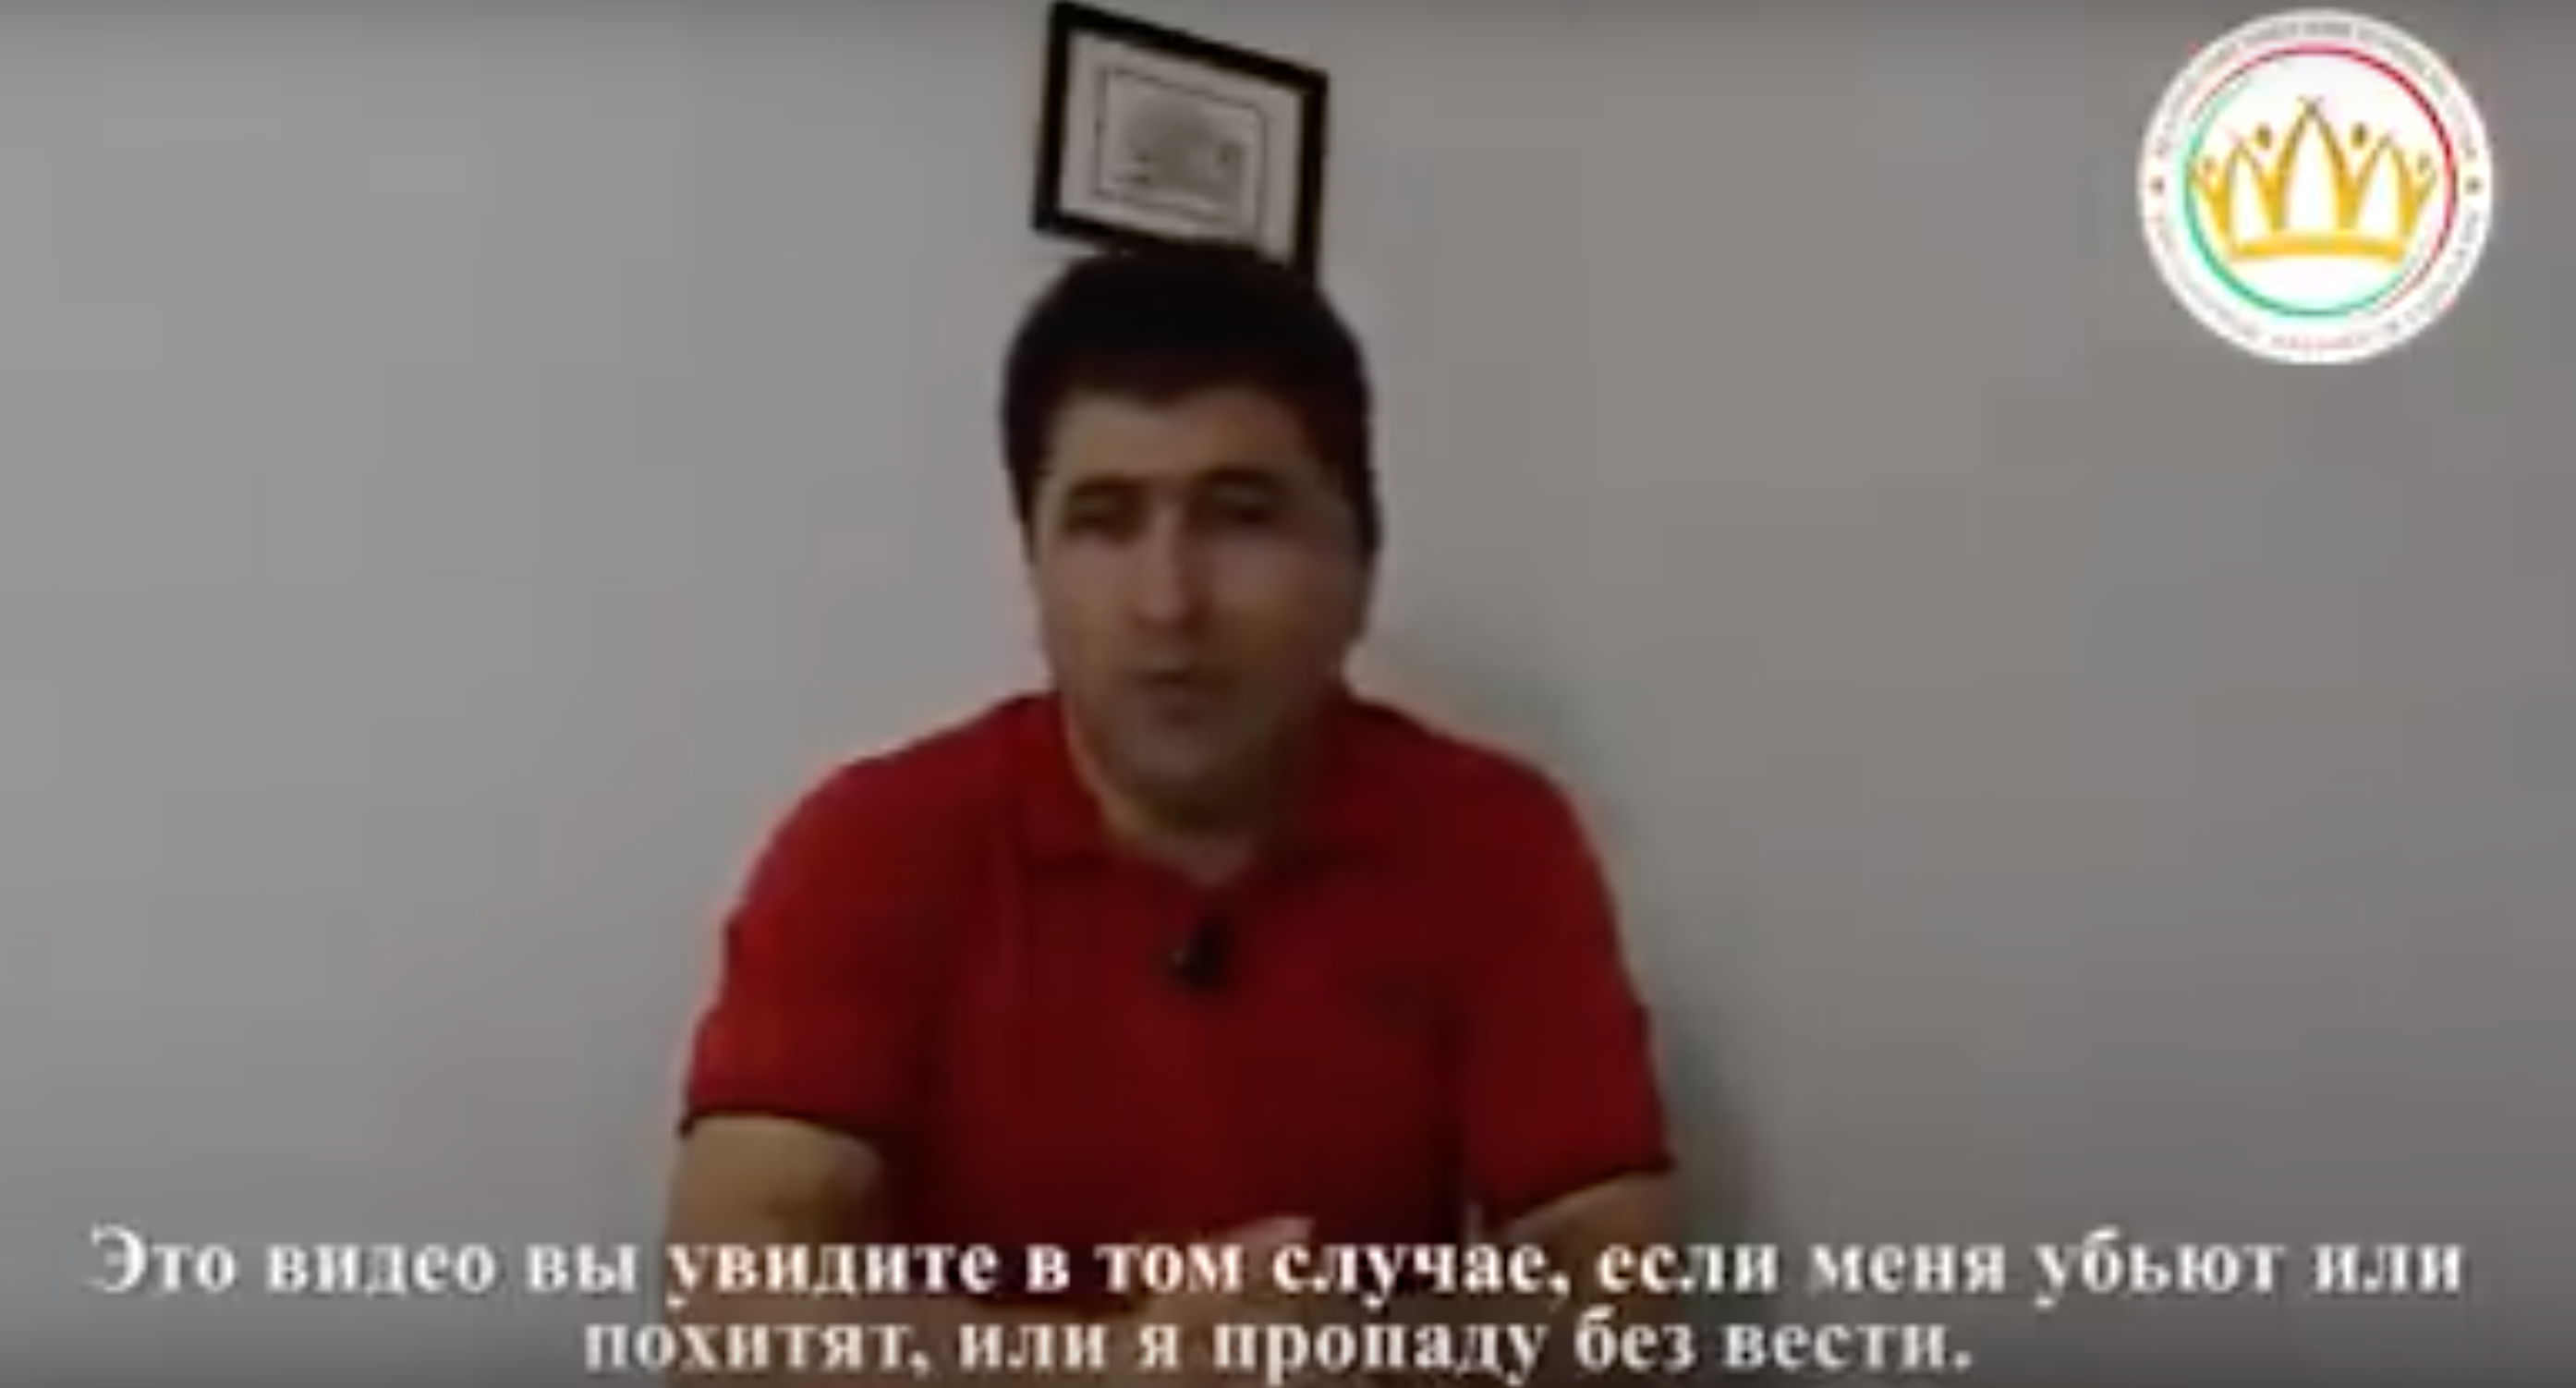 Gadoyev warning in a video that he might be killed or kidnapped. (Photo: YouTube screengrab)